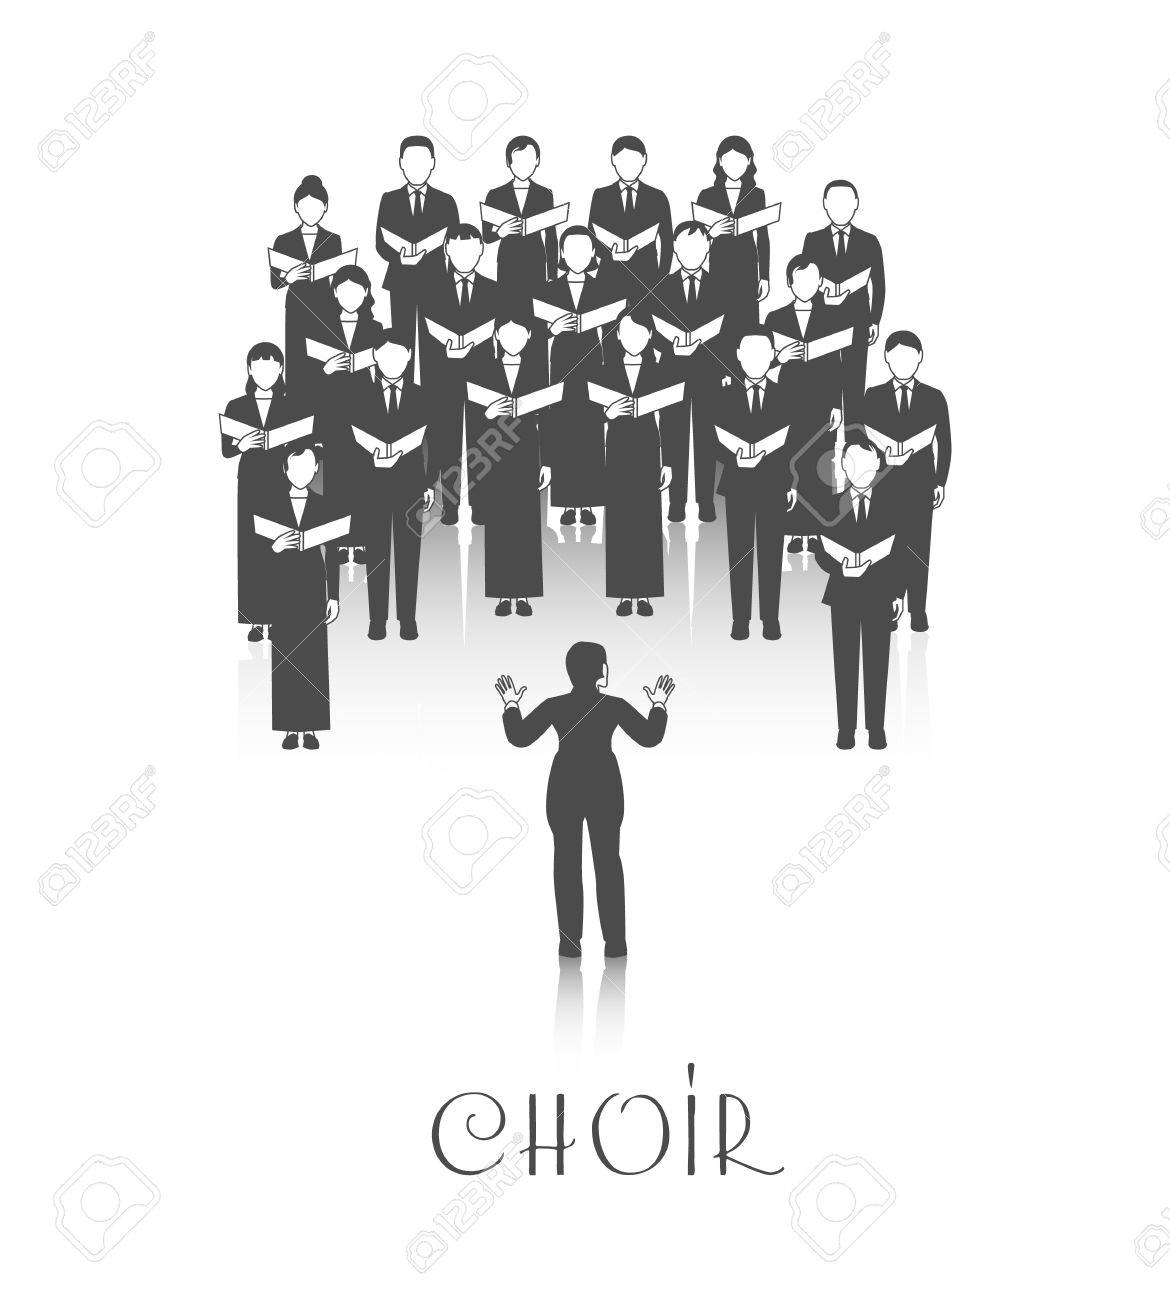 Classic choir performance with sheet music led by conductor dressed in black on white background vector illustration Stock Vector - 70901201